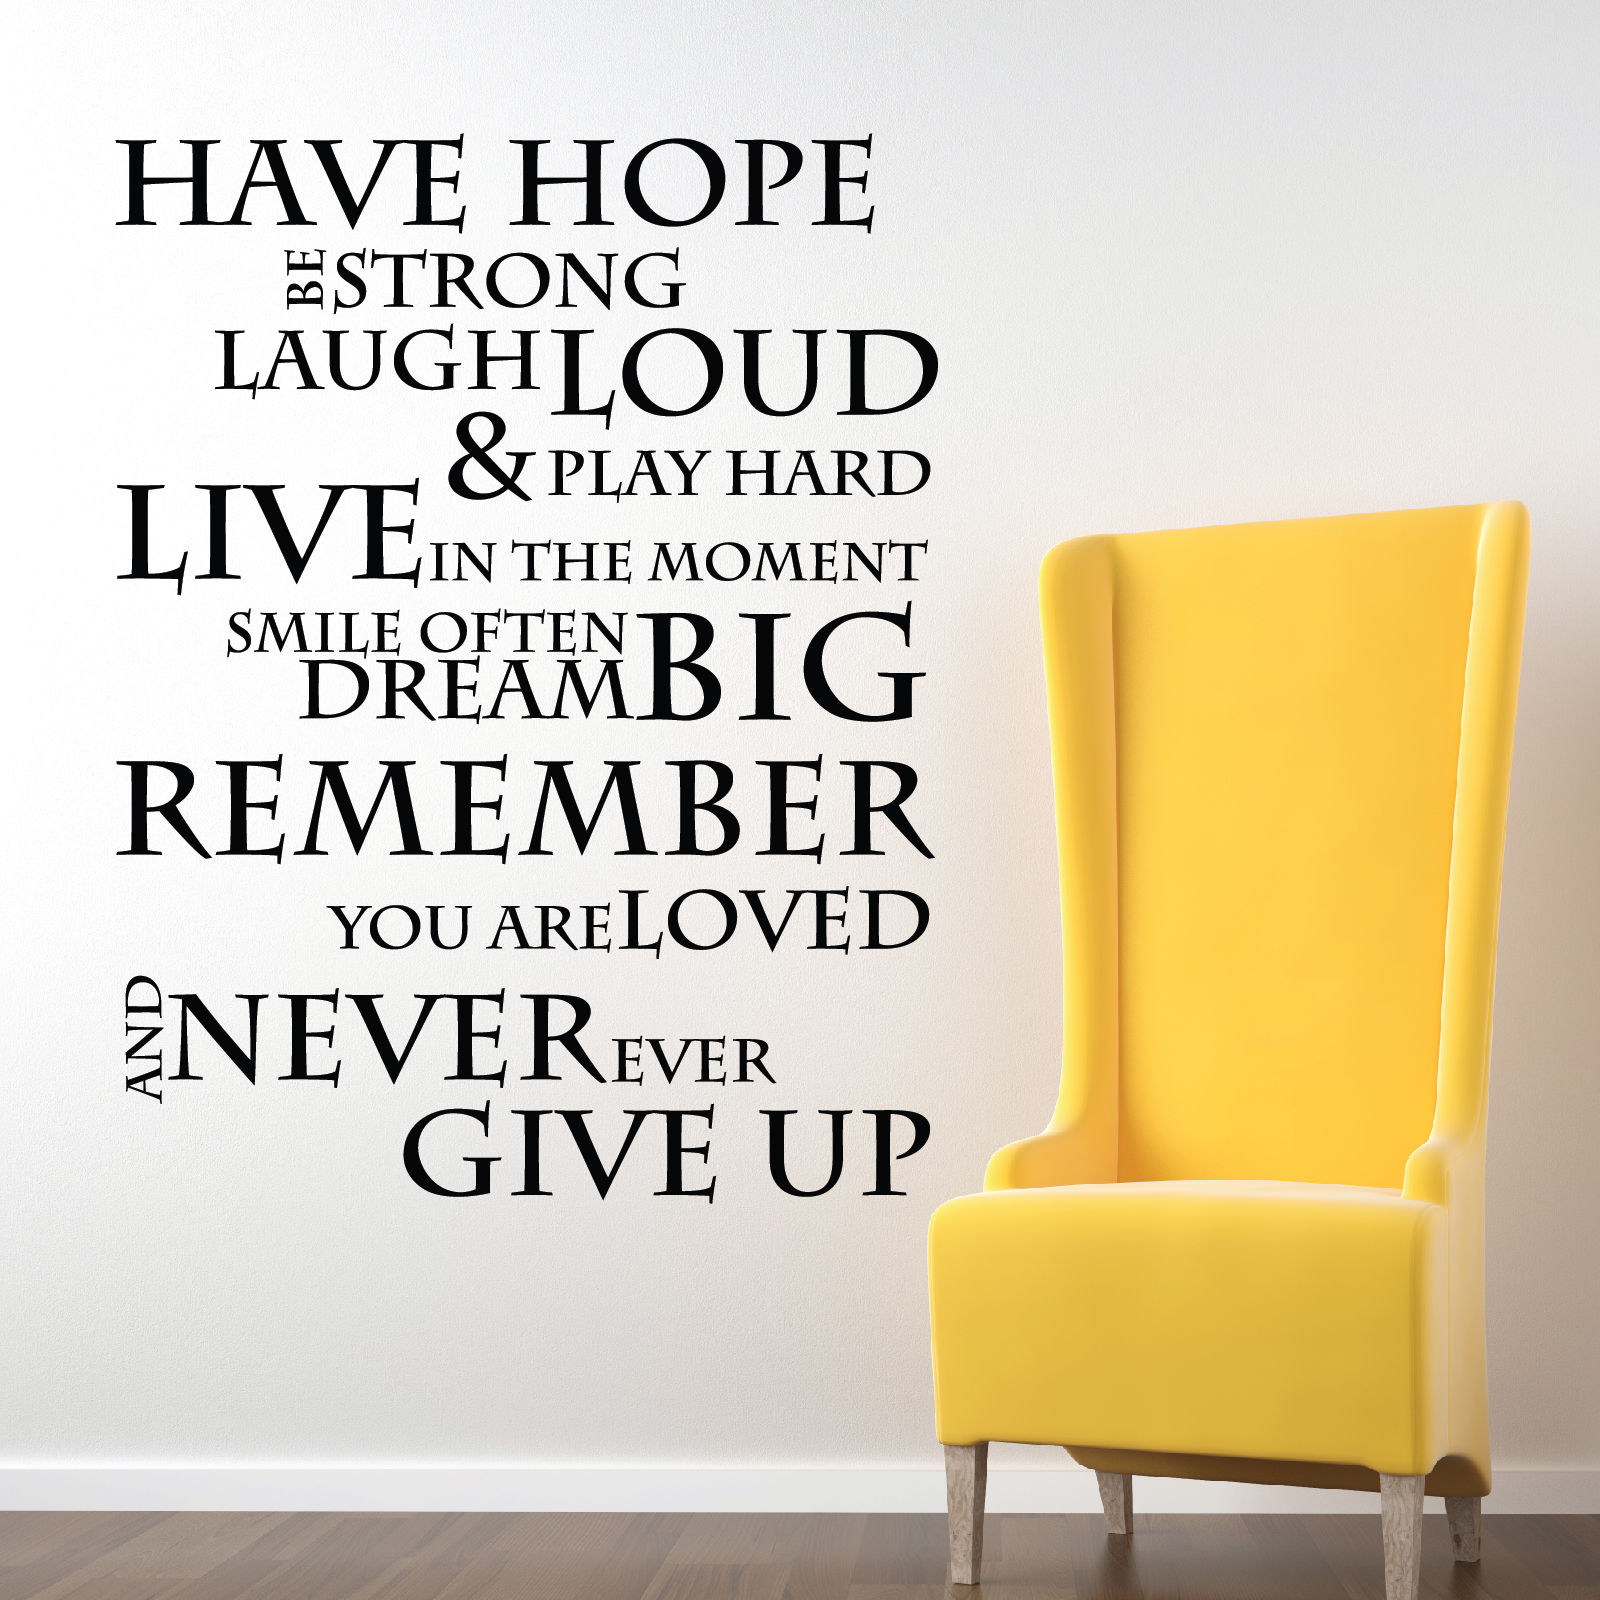 buy have hope inspirational quotes